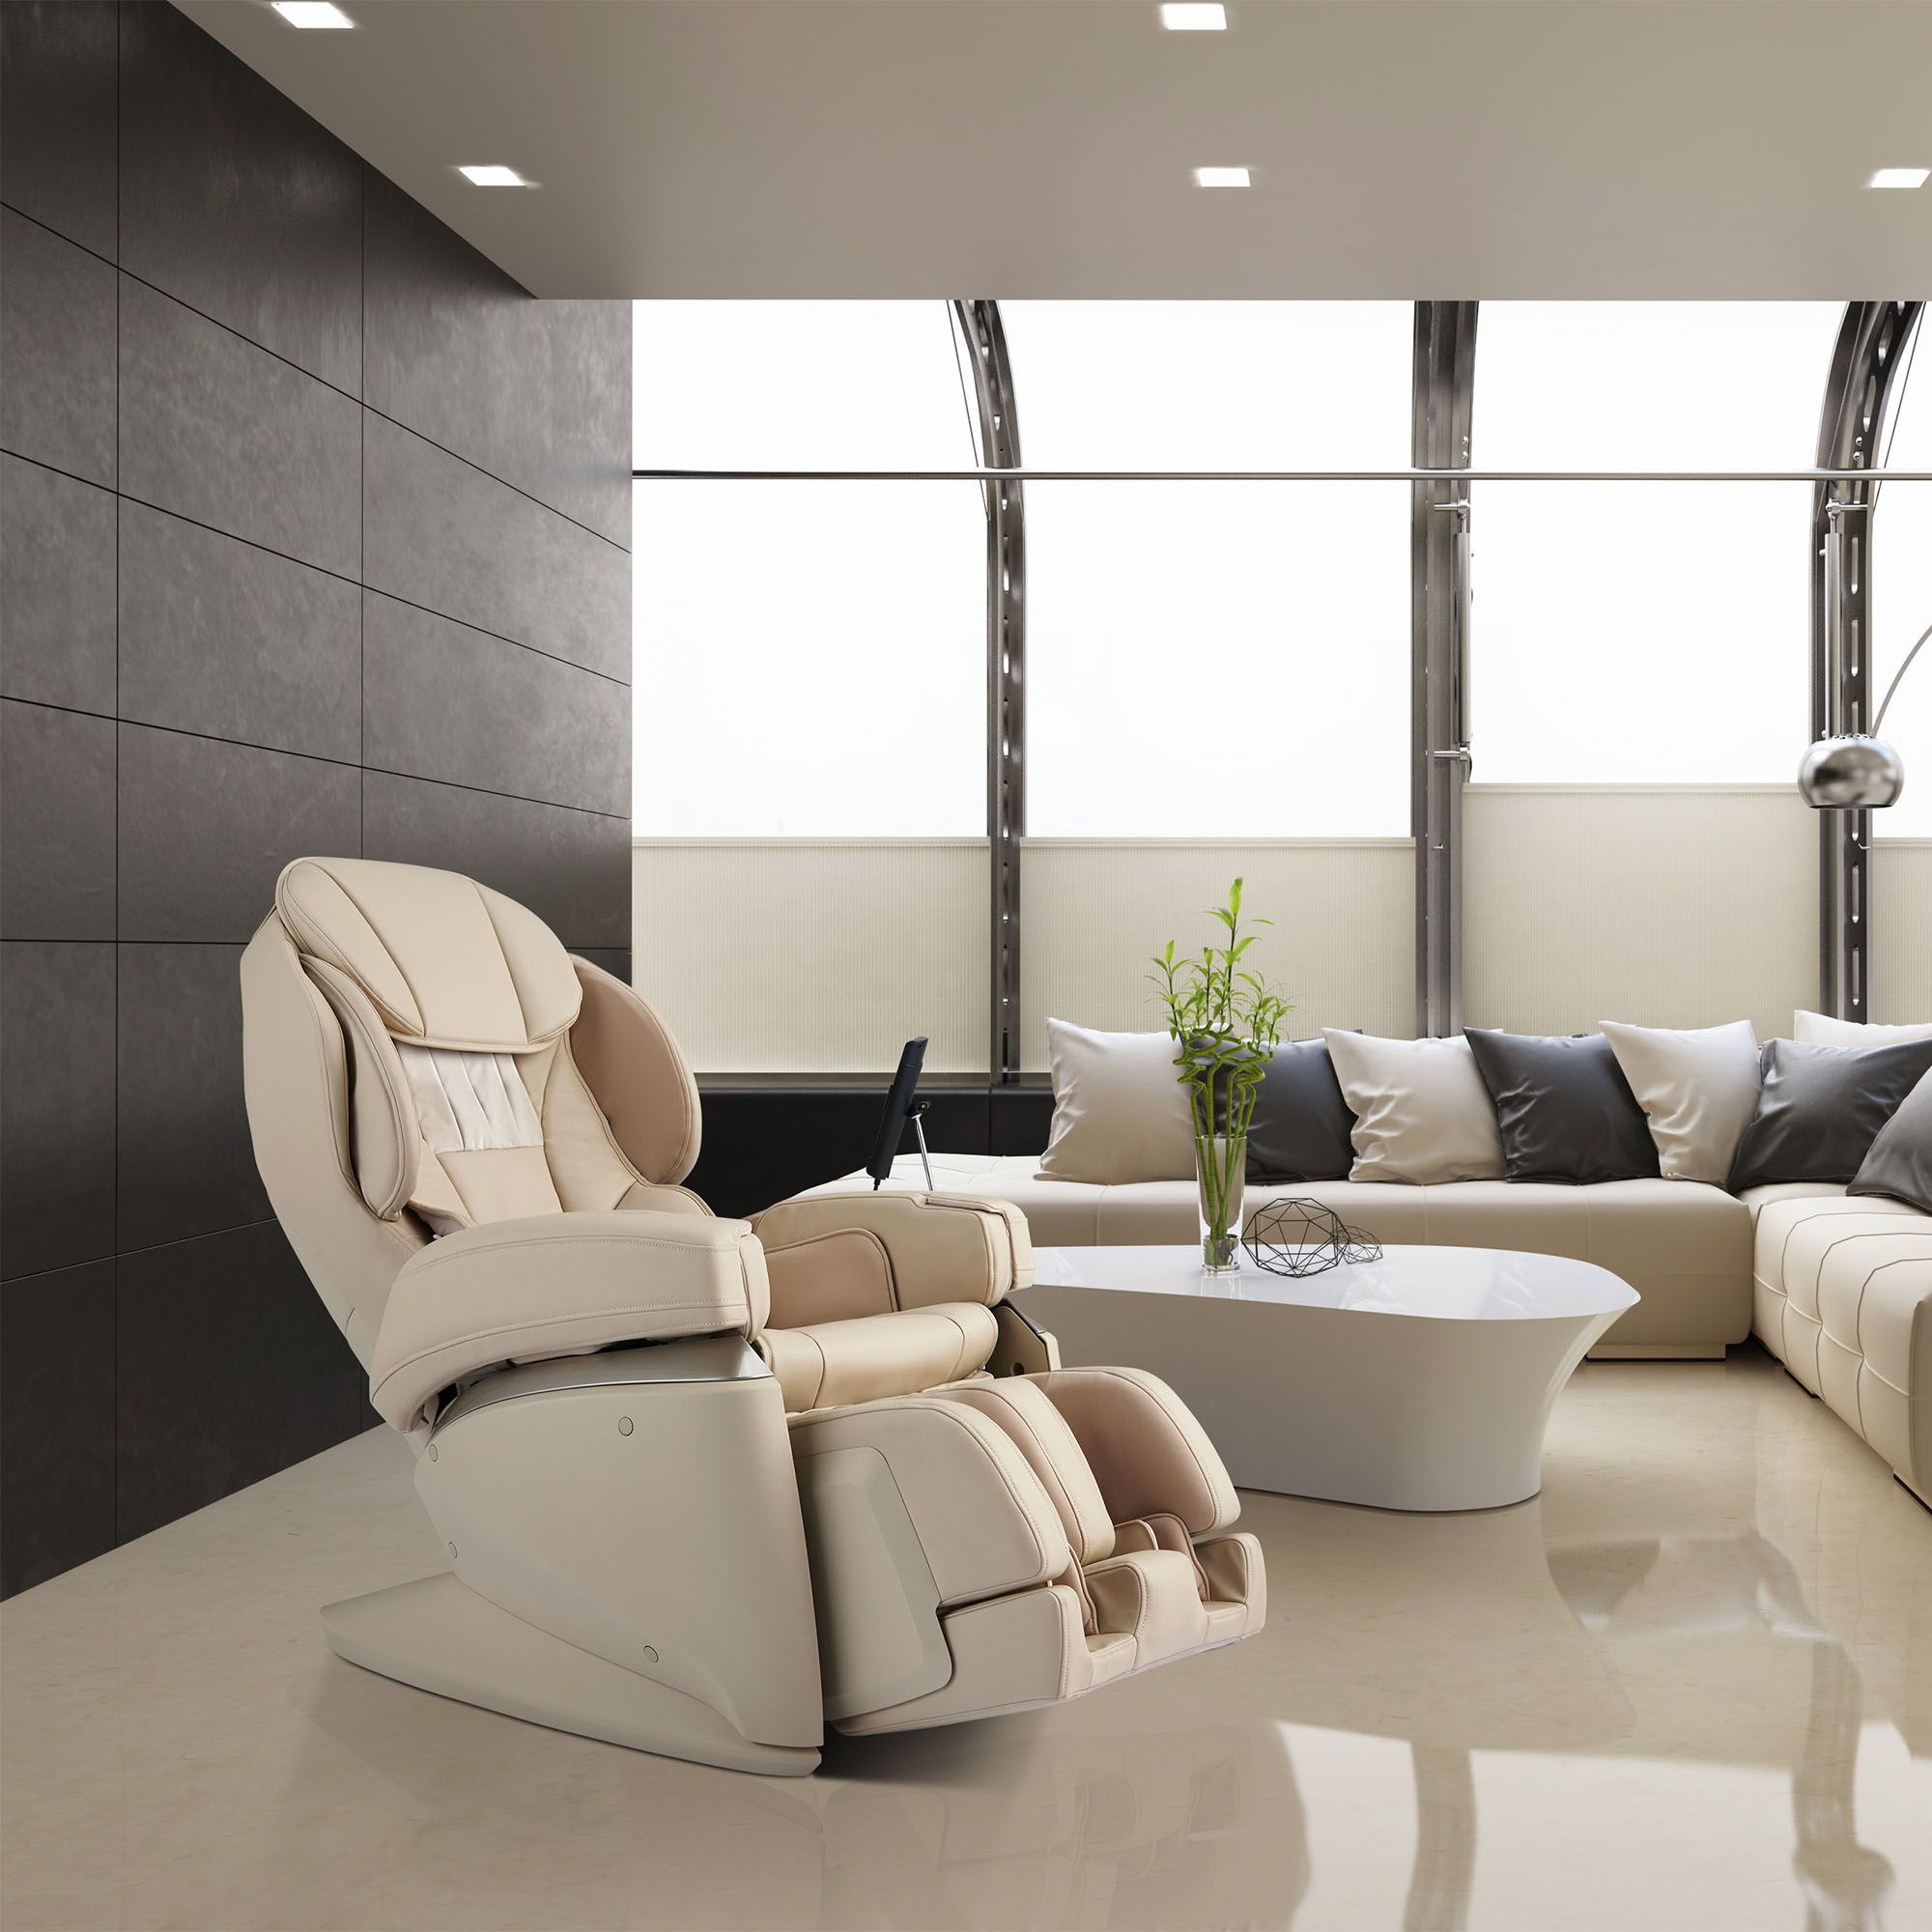 Synca JP1100 Massage Chair and Recliner - Chiropractor's Choice